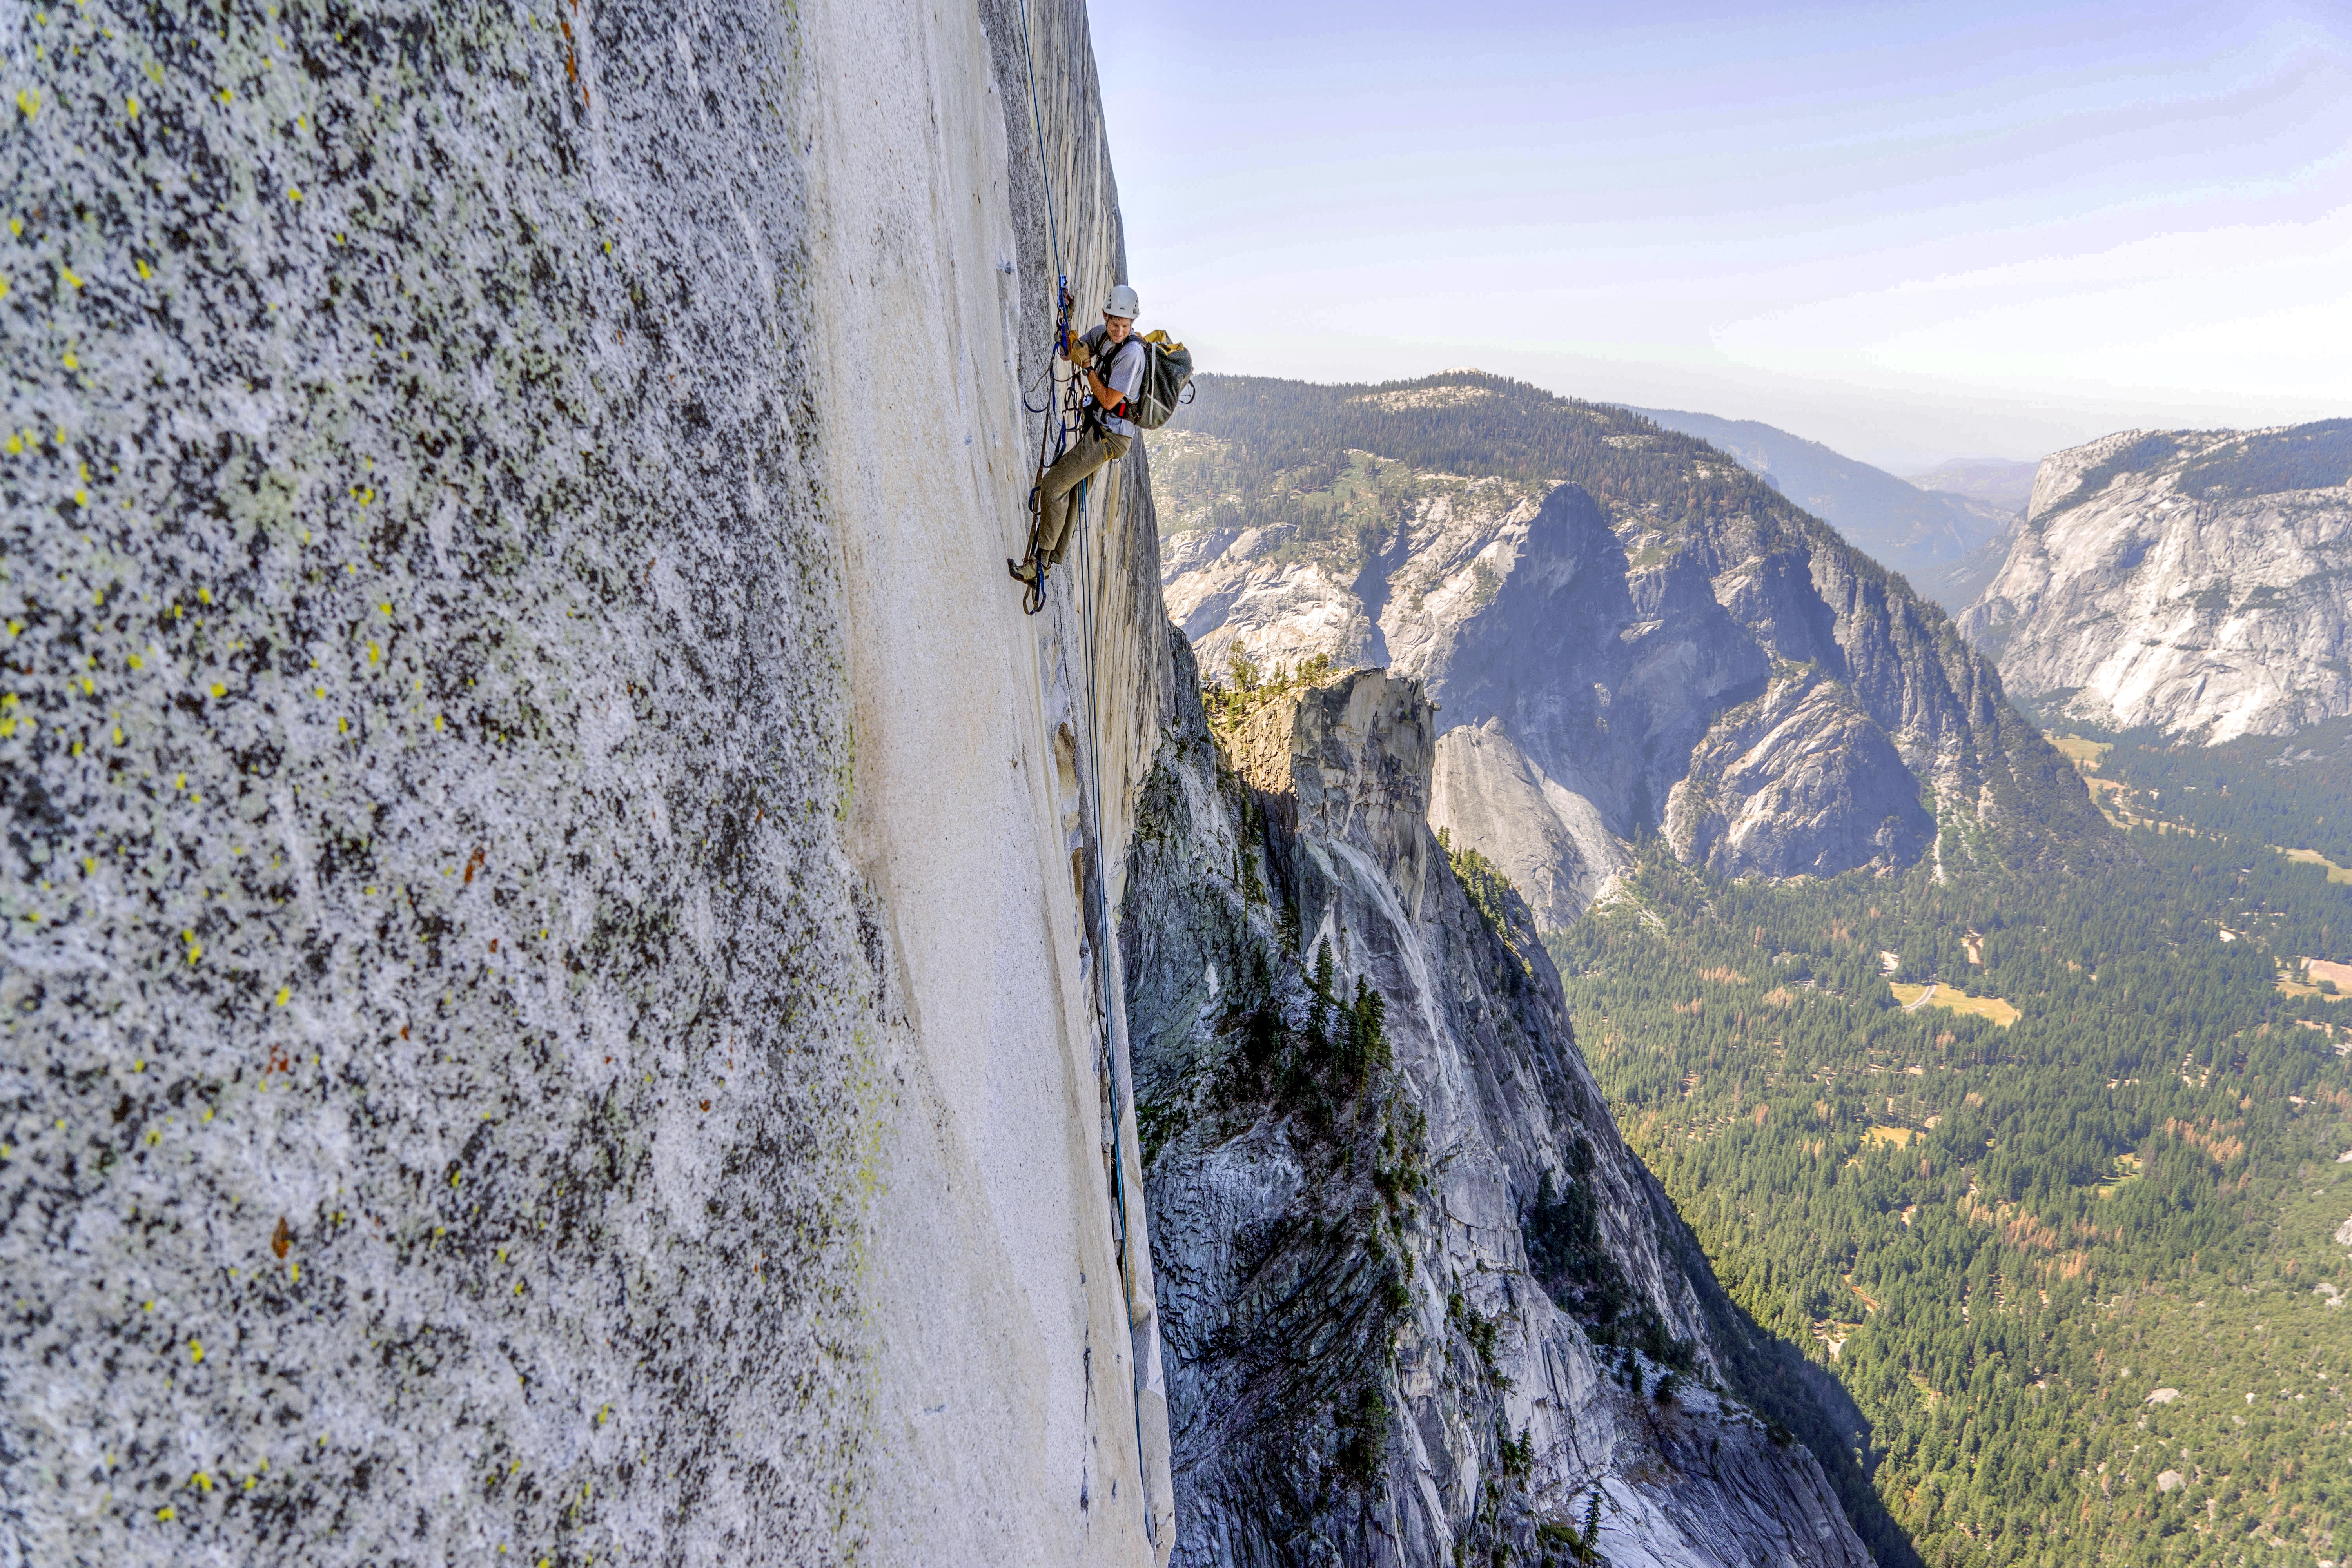 Stock ascends Half Dome in Yosemite National Park. As the official geologist of Yosemite National Park, Stock uses his rock climbing skills to assess rock formations for the safety of the park's four million annual visitors.